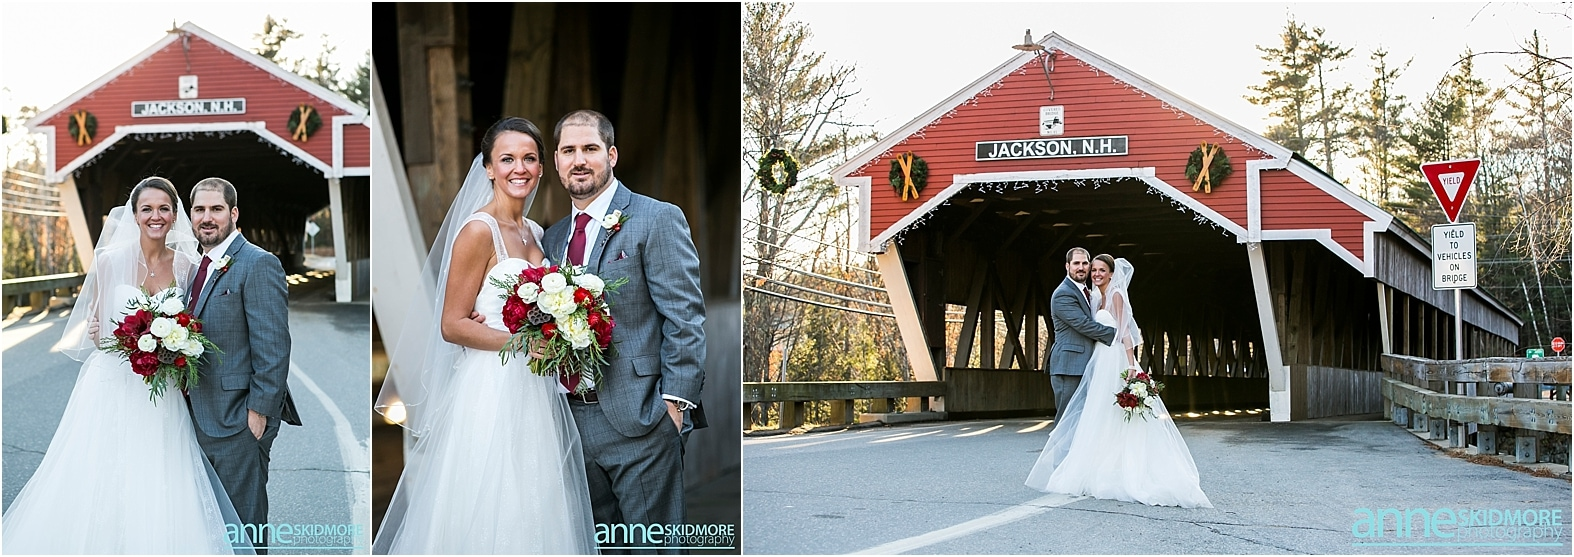 Wentworth_Inn_Wedding_030